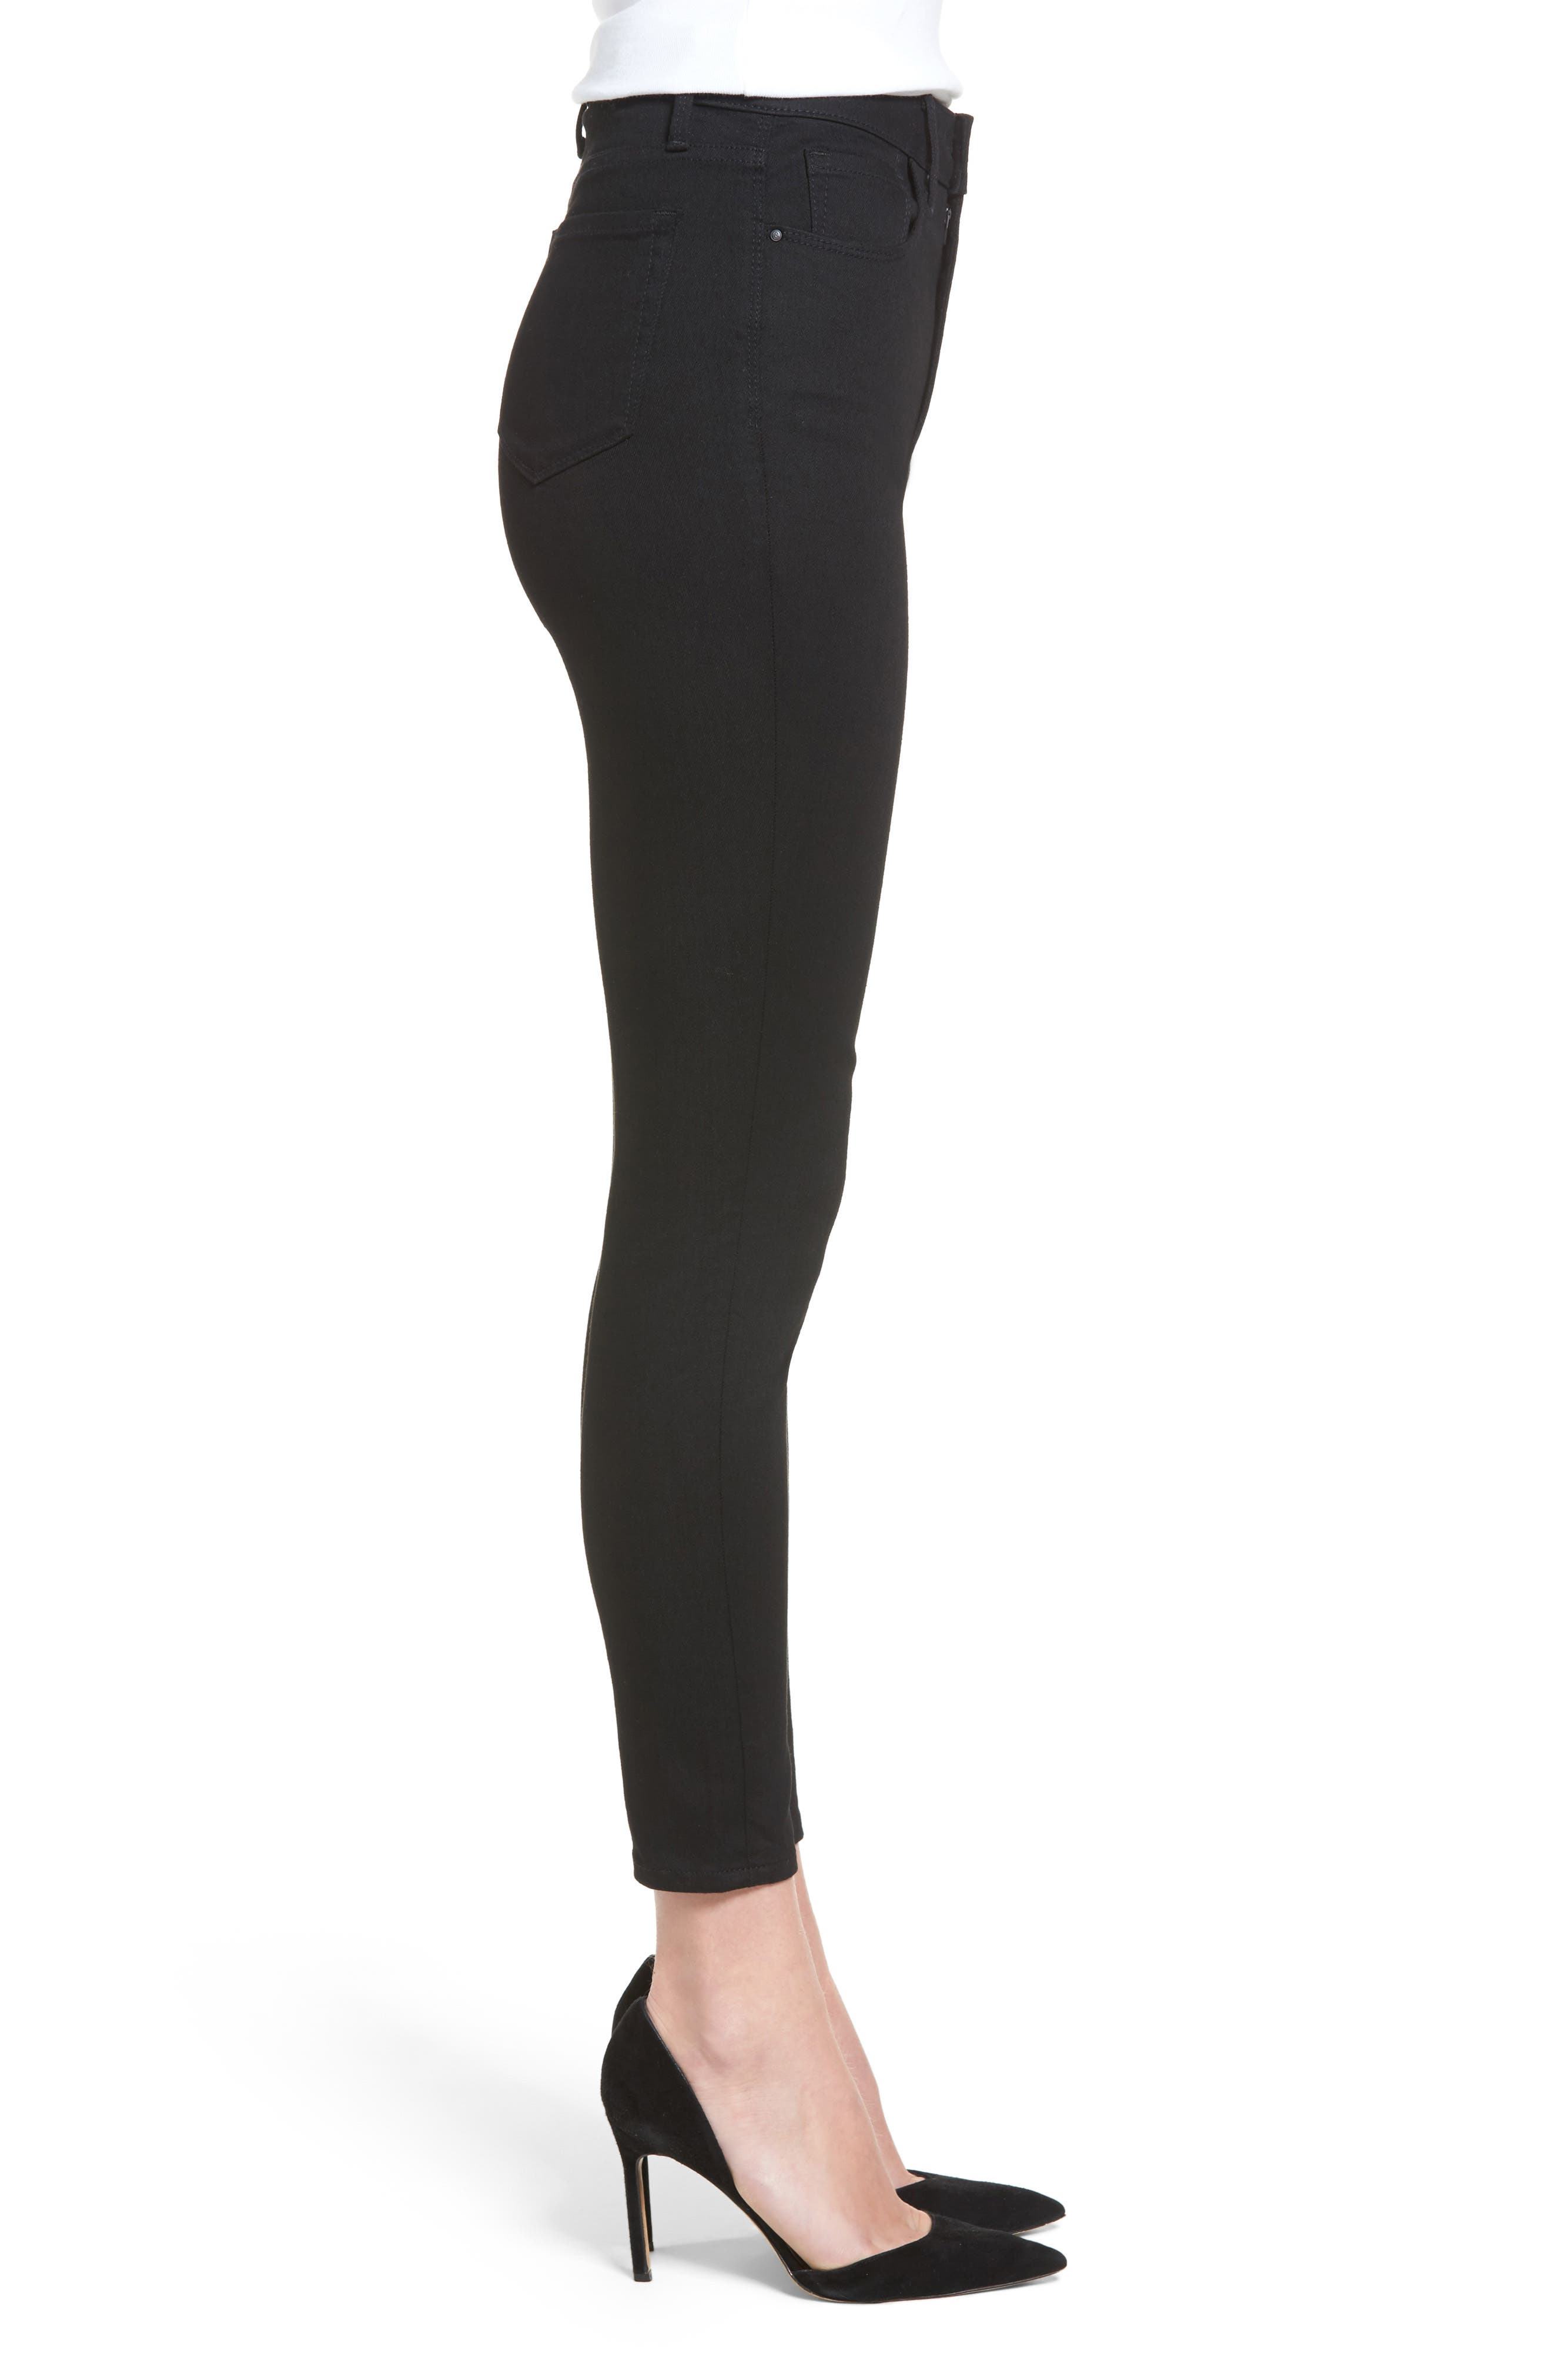 Charity High Waist Crop Skinny Jeans,                             Alternate thumbnail 4, color,                             Midnight Rinse